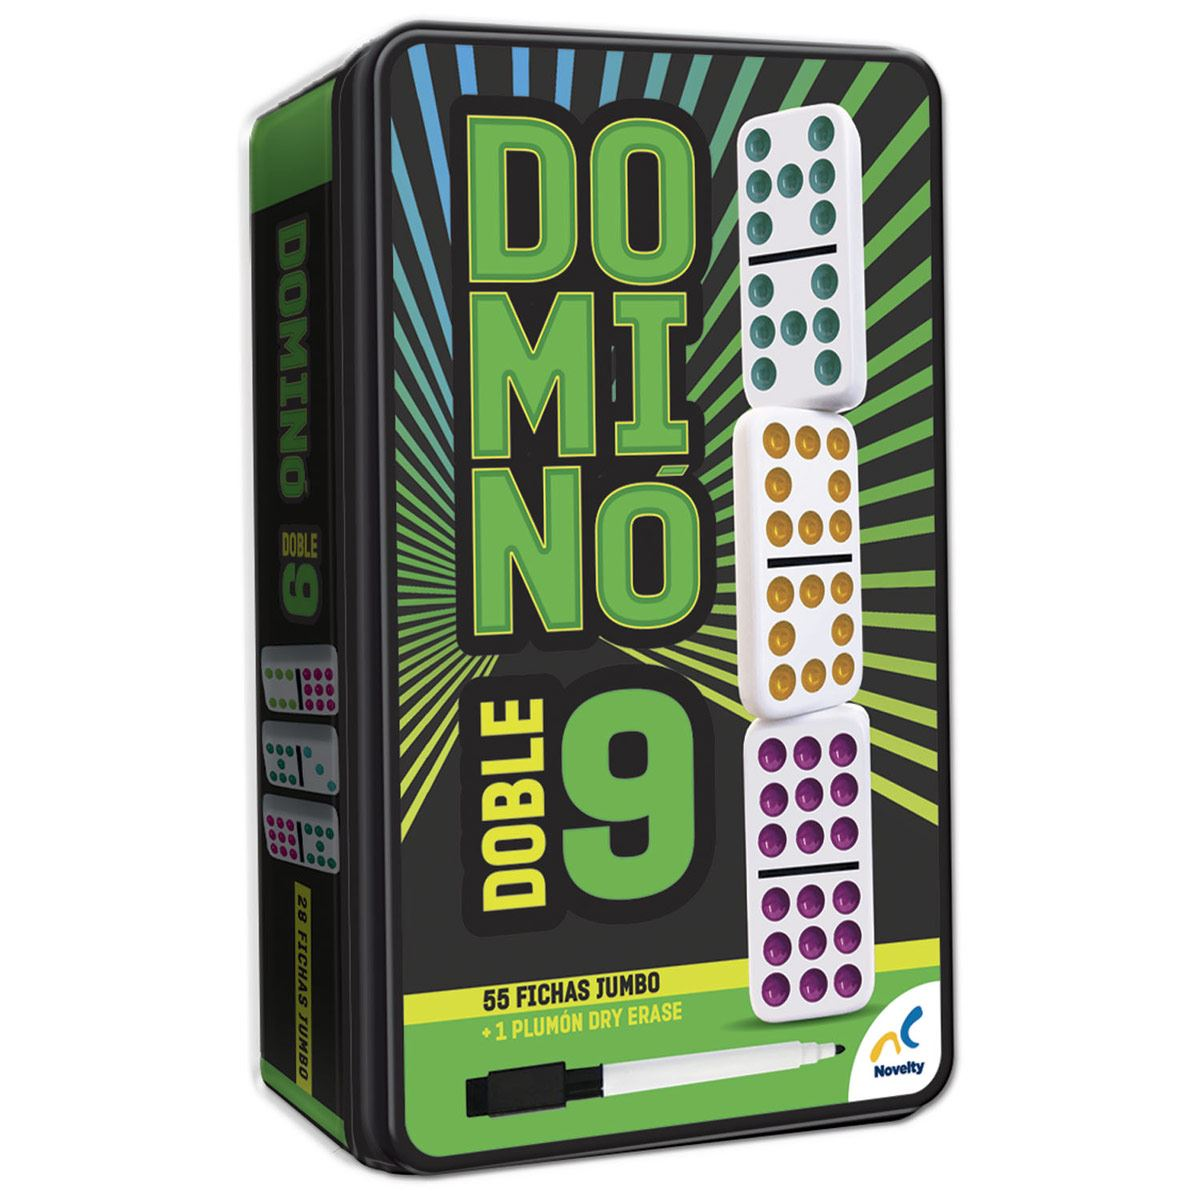 Domino colores doble 9 d581  - Sanborns